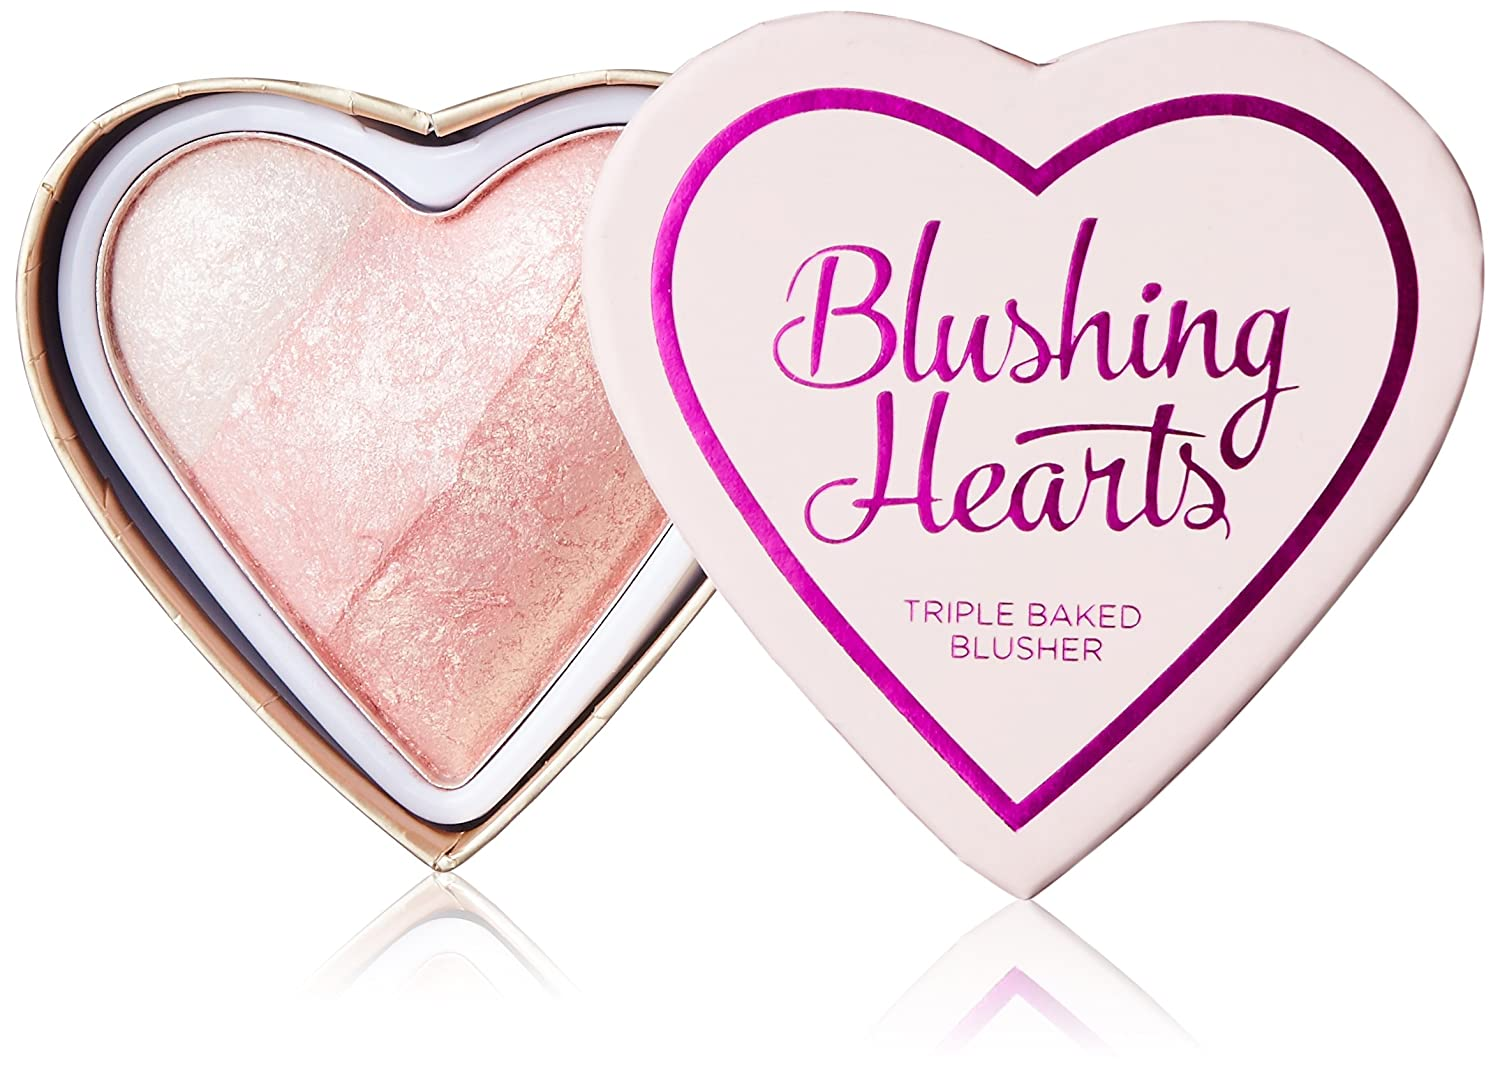 Makeup Revolution London I Love Makeup Blushing Hearts PotrĂljny rĂlĹz do policzkĂlw 10g - Iced Hearts Perfumeria 5029066053336